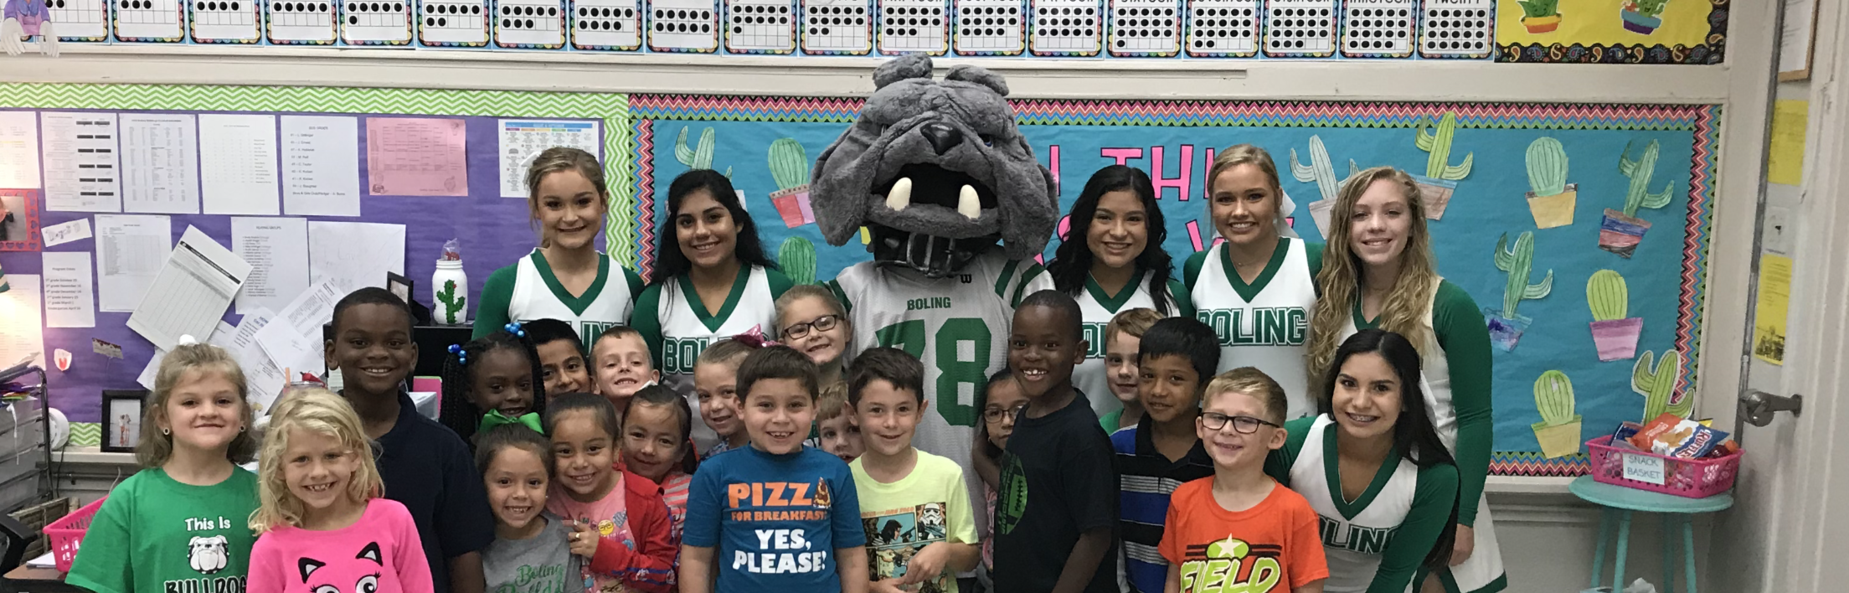 a group of elementary school children with high school cheerleaders and bulldog mascot